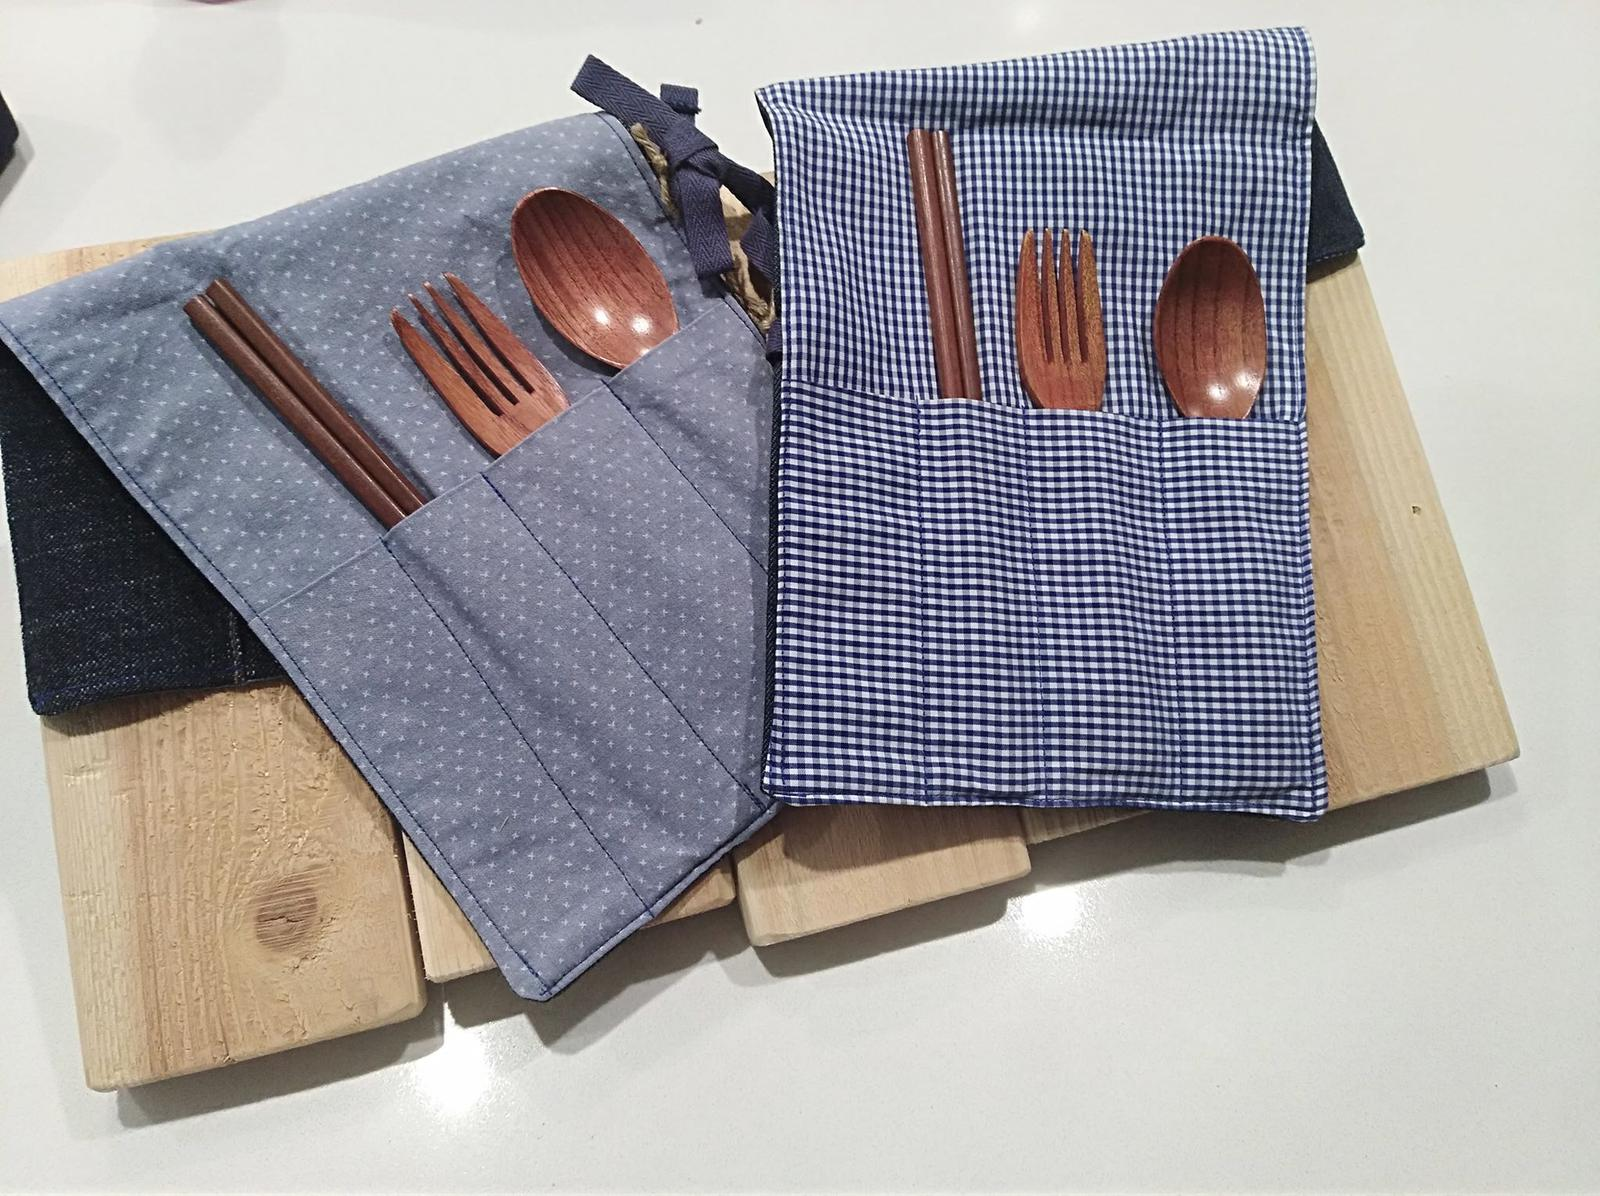 Recycled denim cutlery rolls